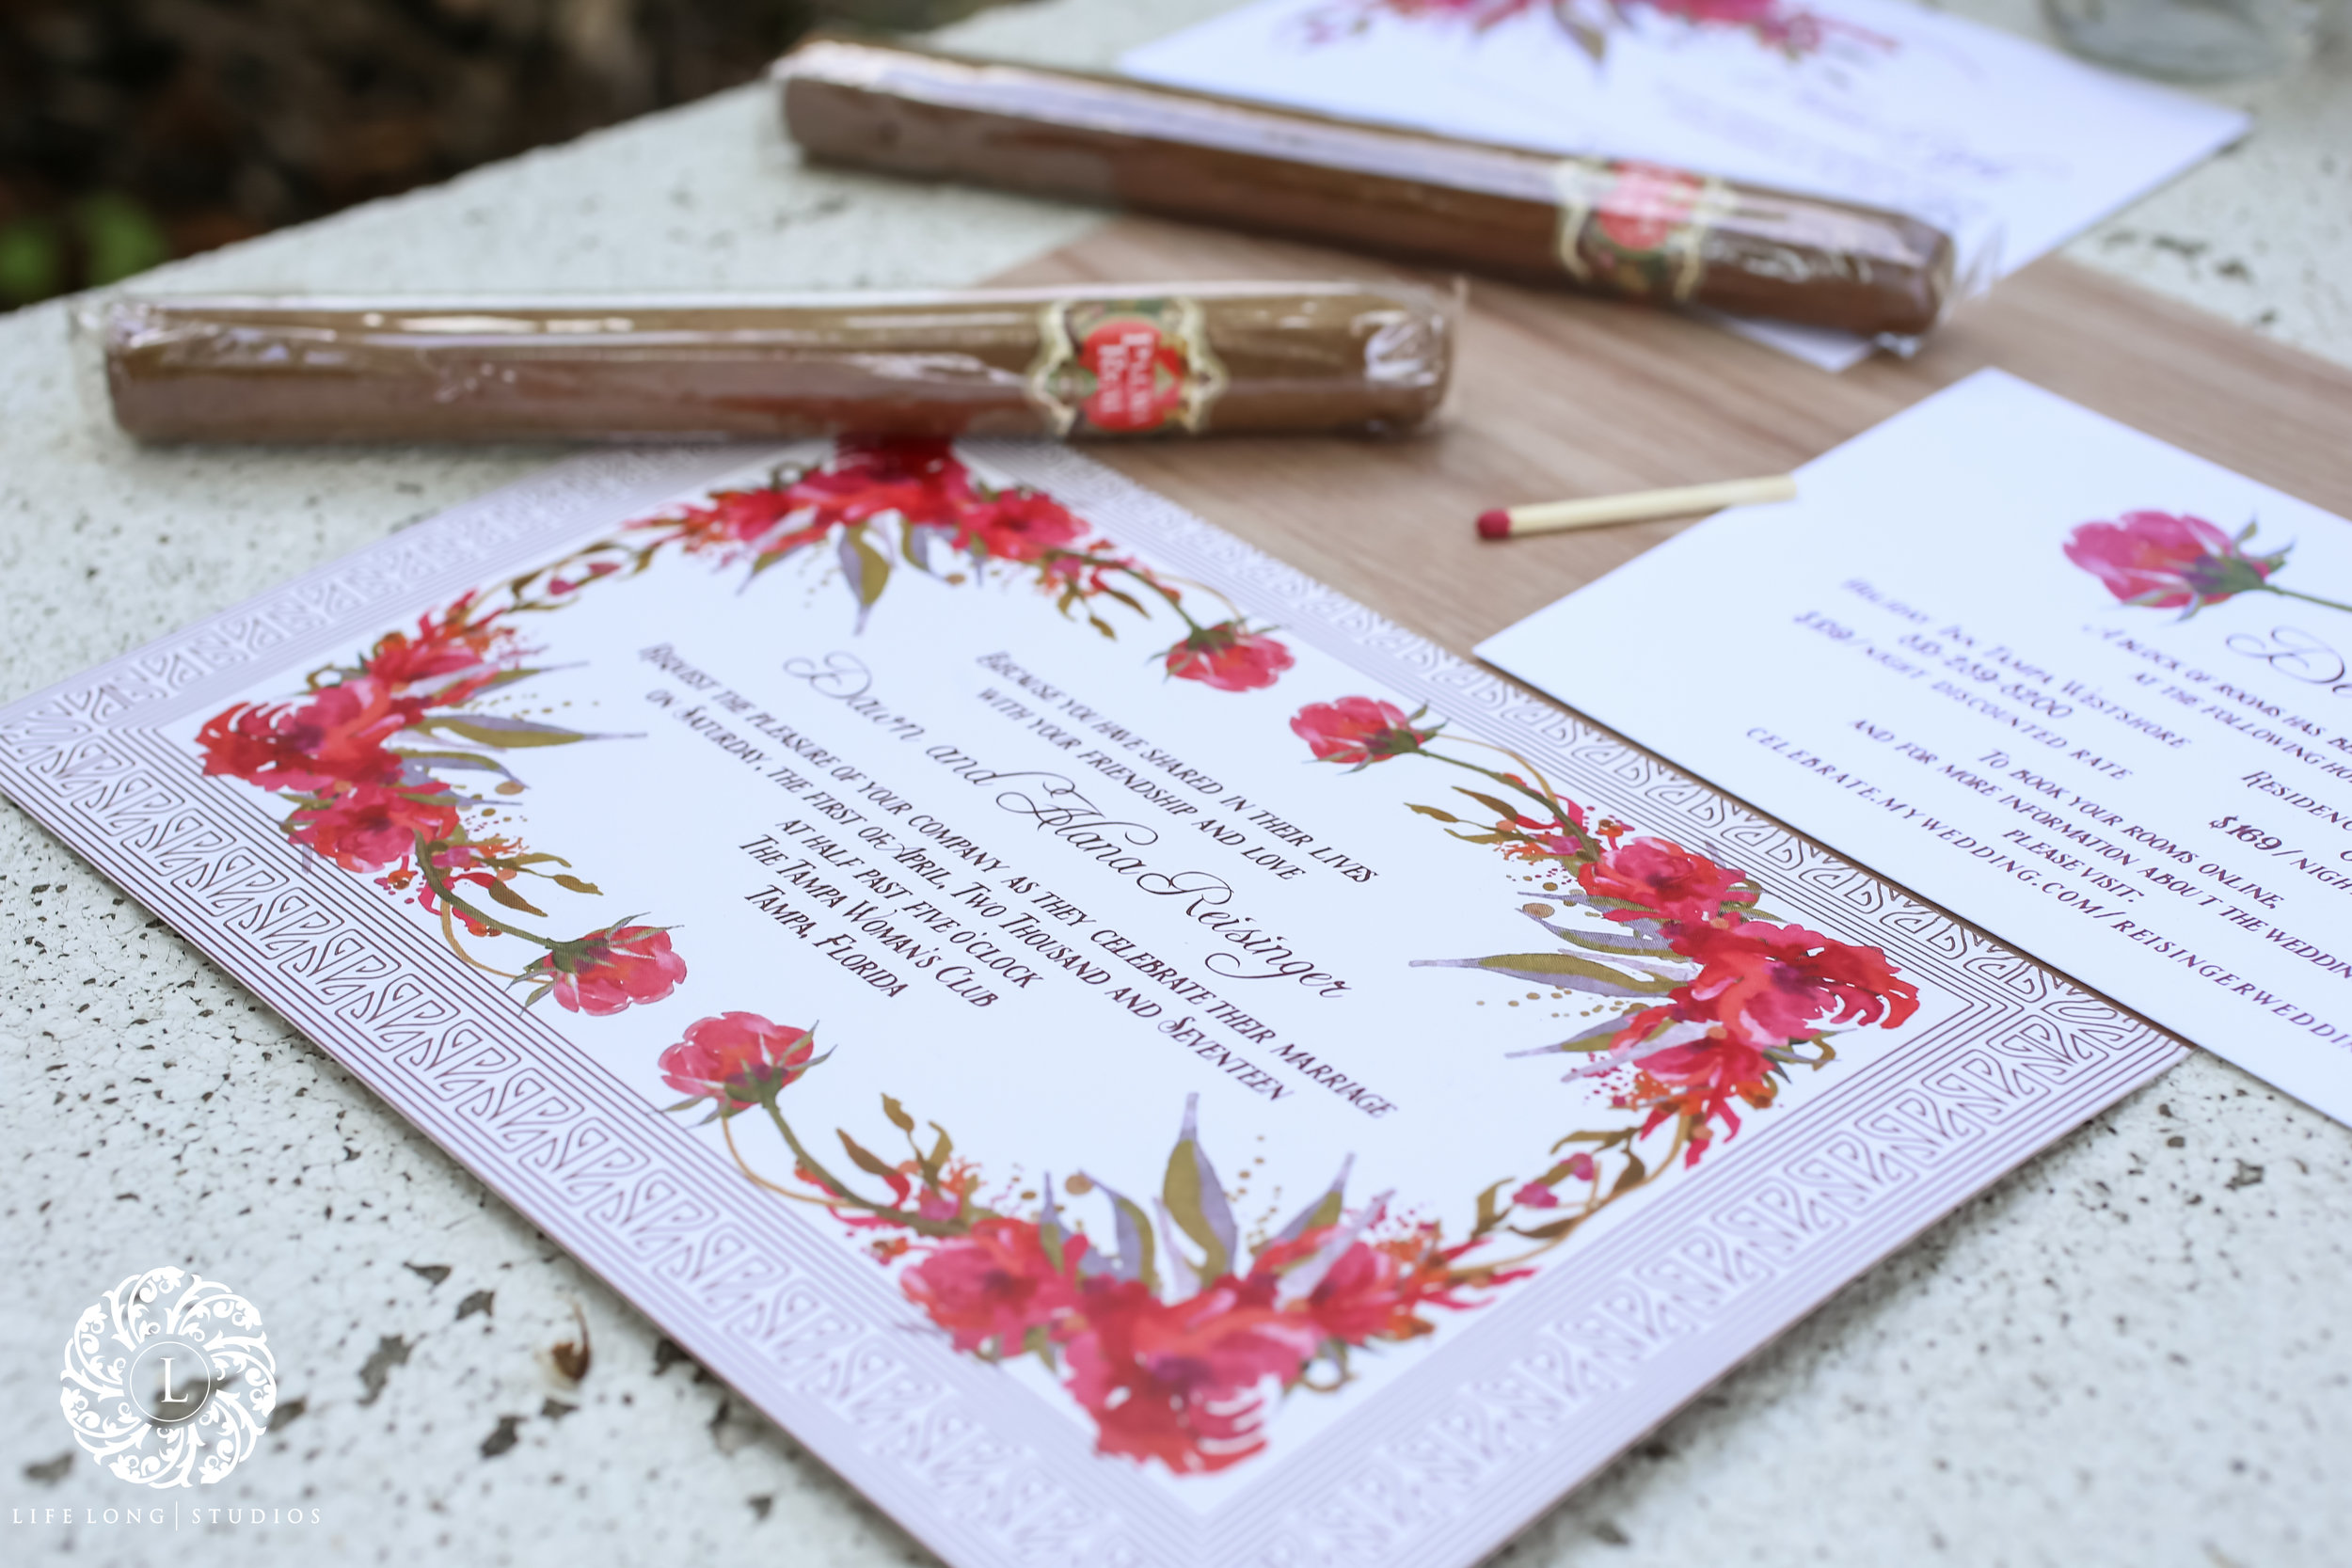 The invitation set was designed to resemble a vintage cigar box which opened up to reveal all the details!